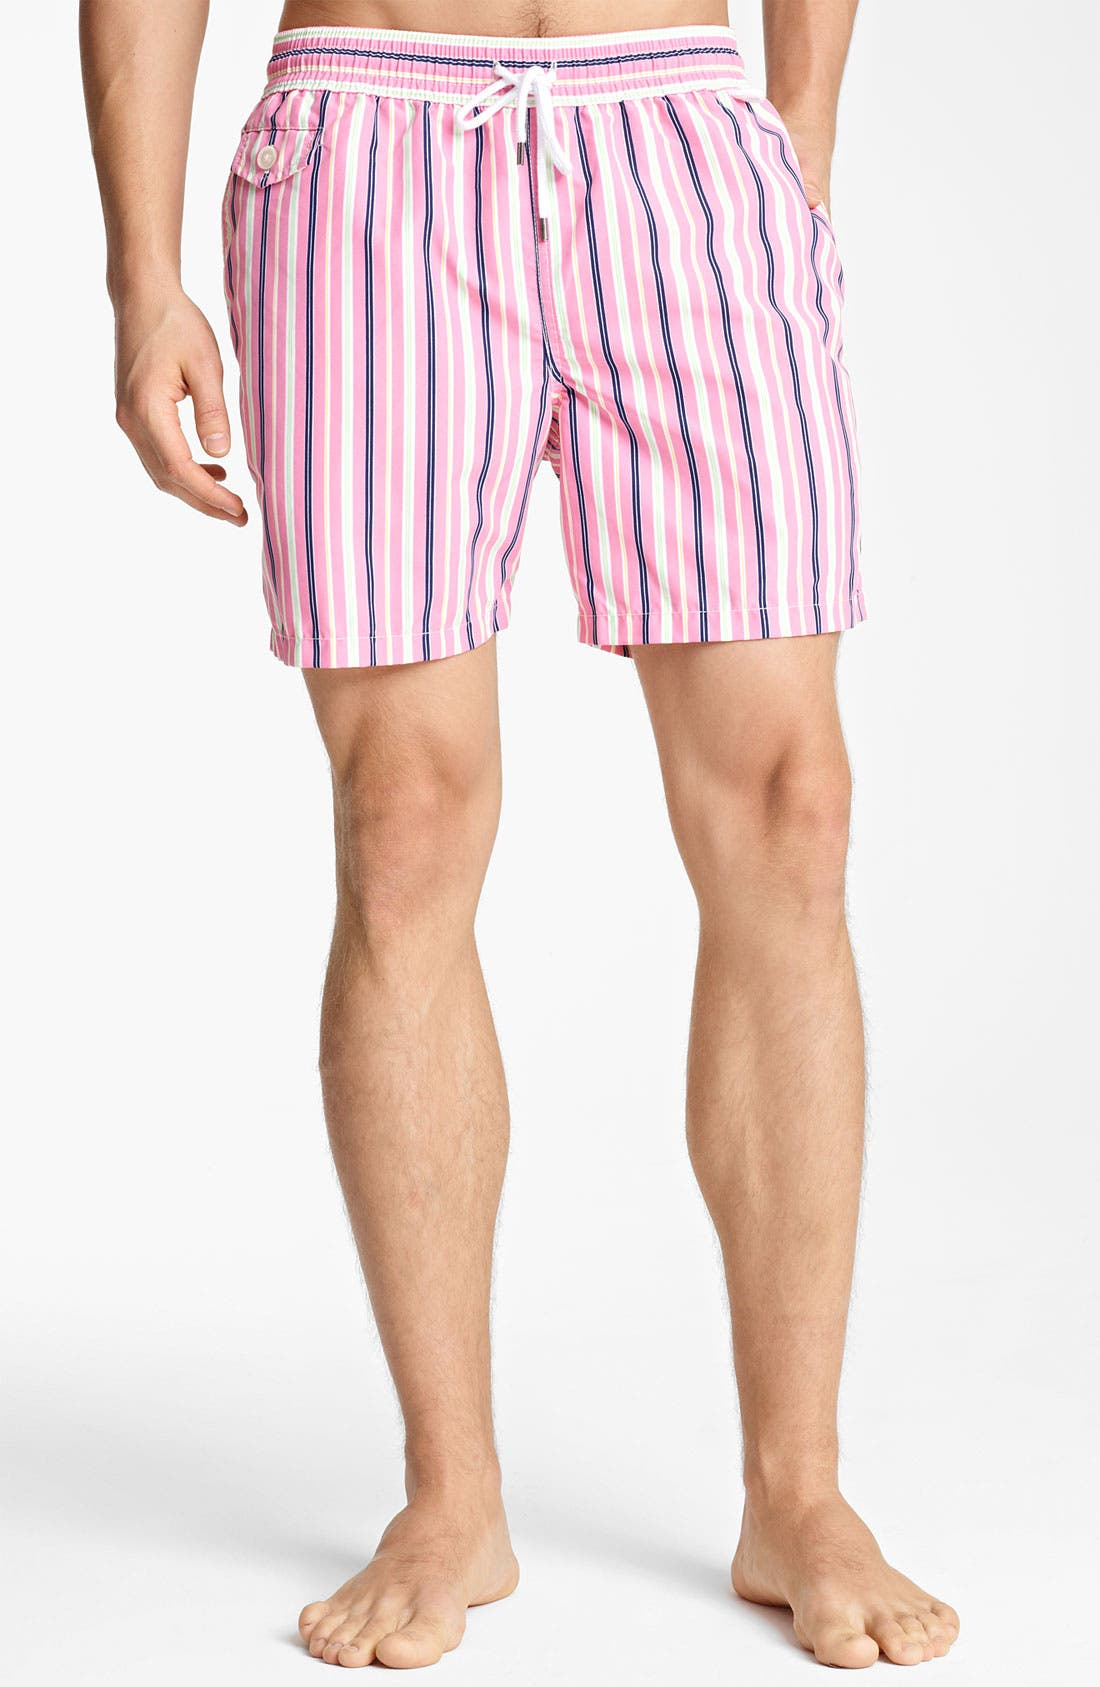 Alternate Image 1 Selected - Polo Ralph Lauren 'Traveler' Swim Trunks